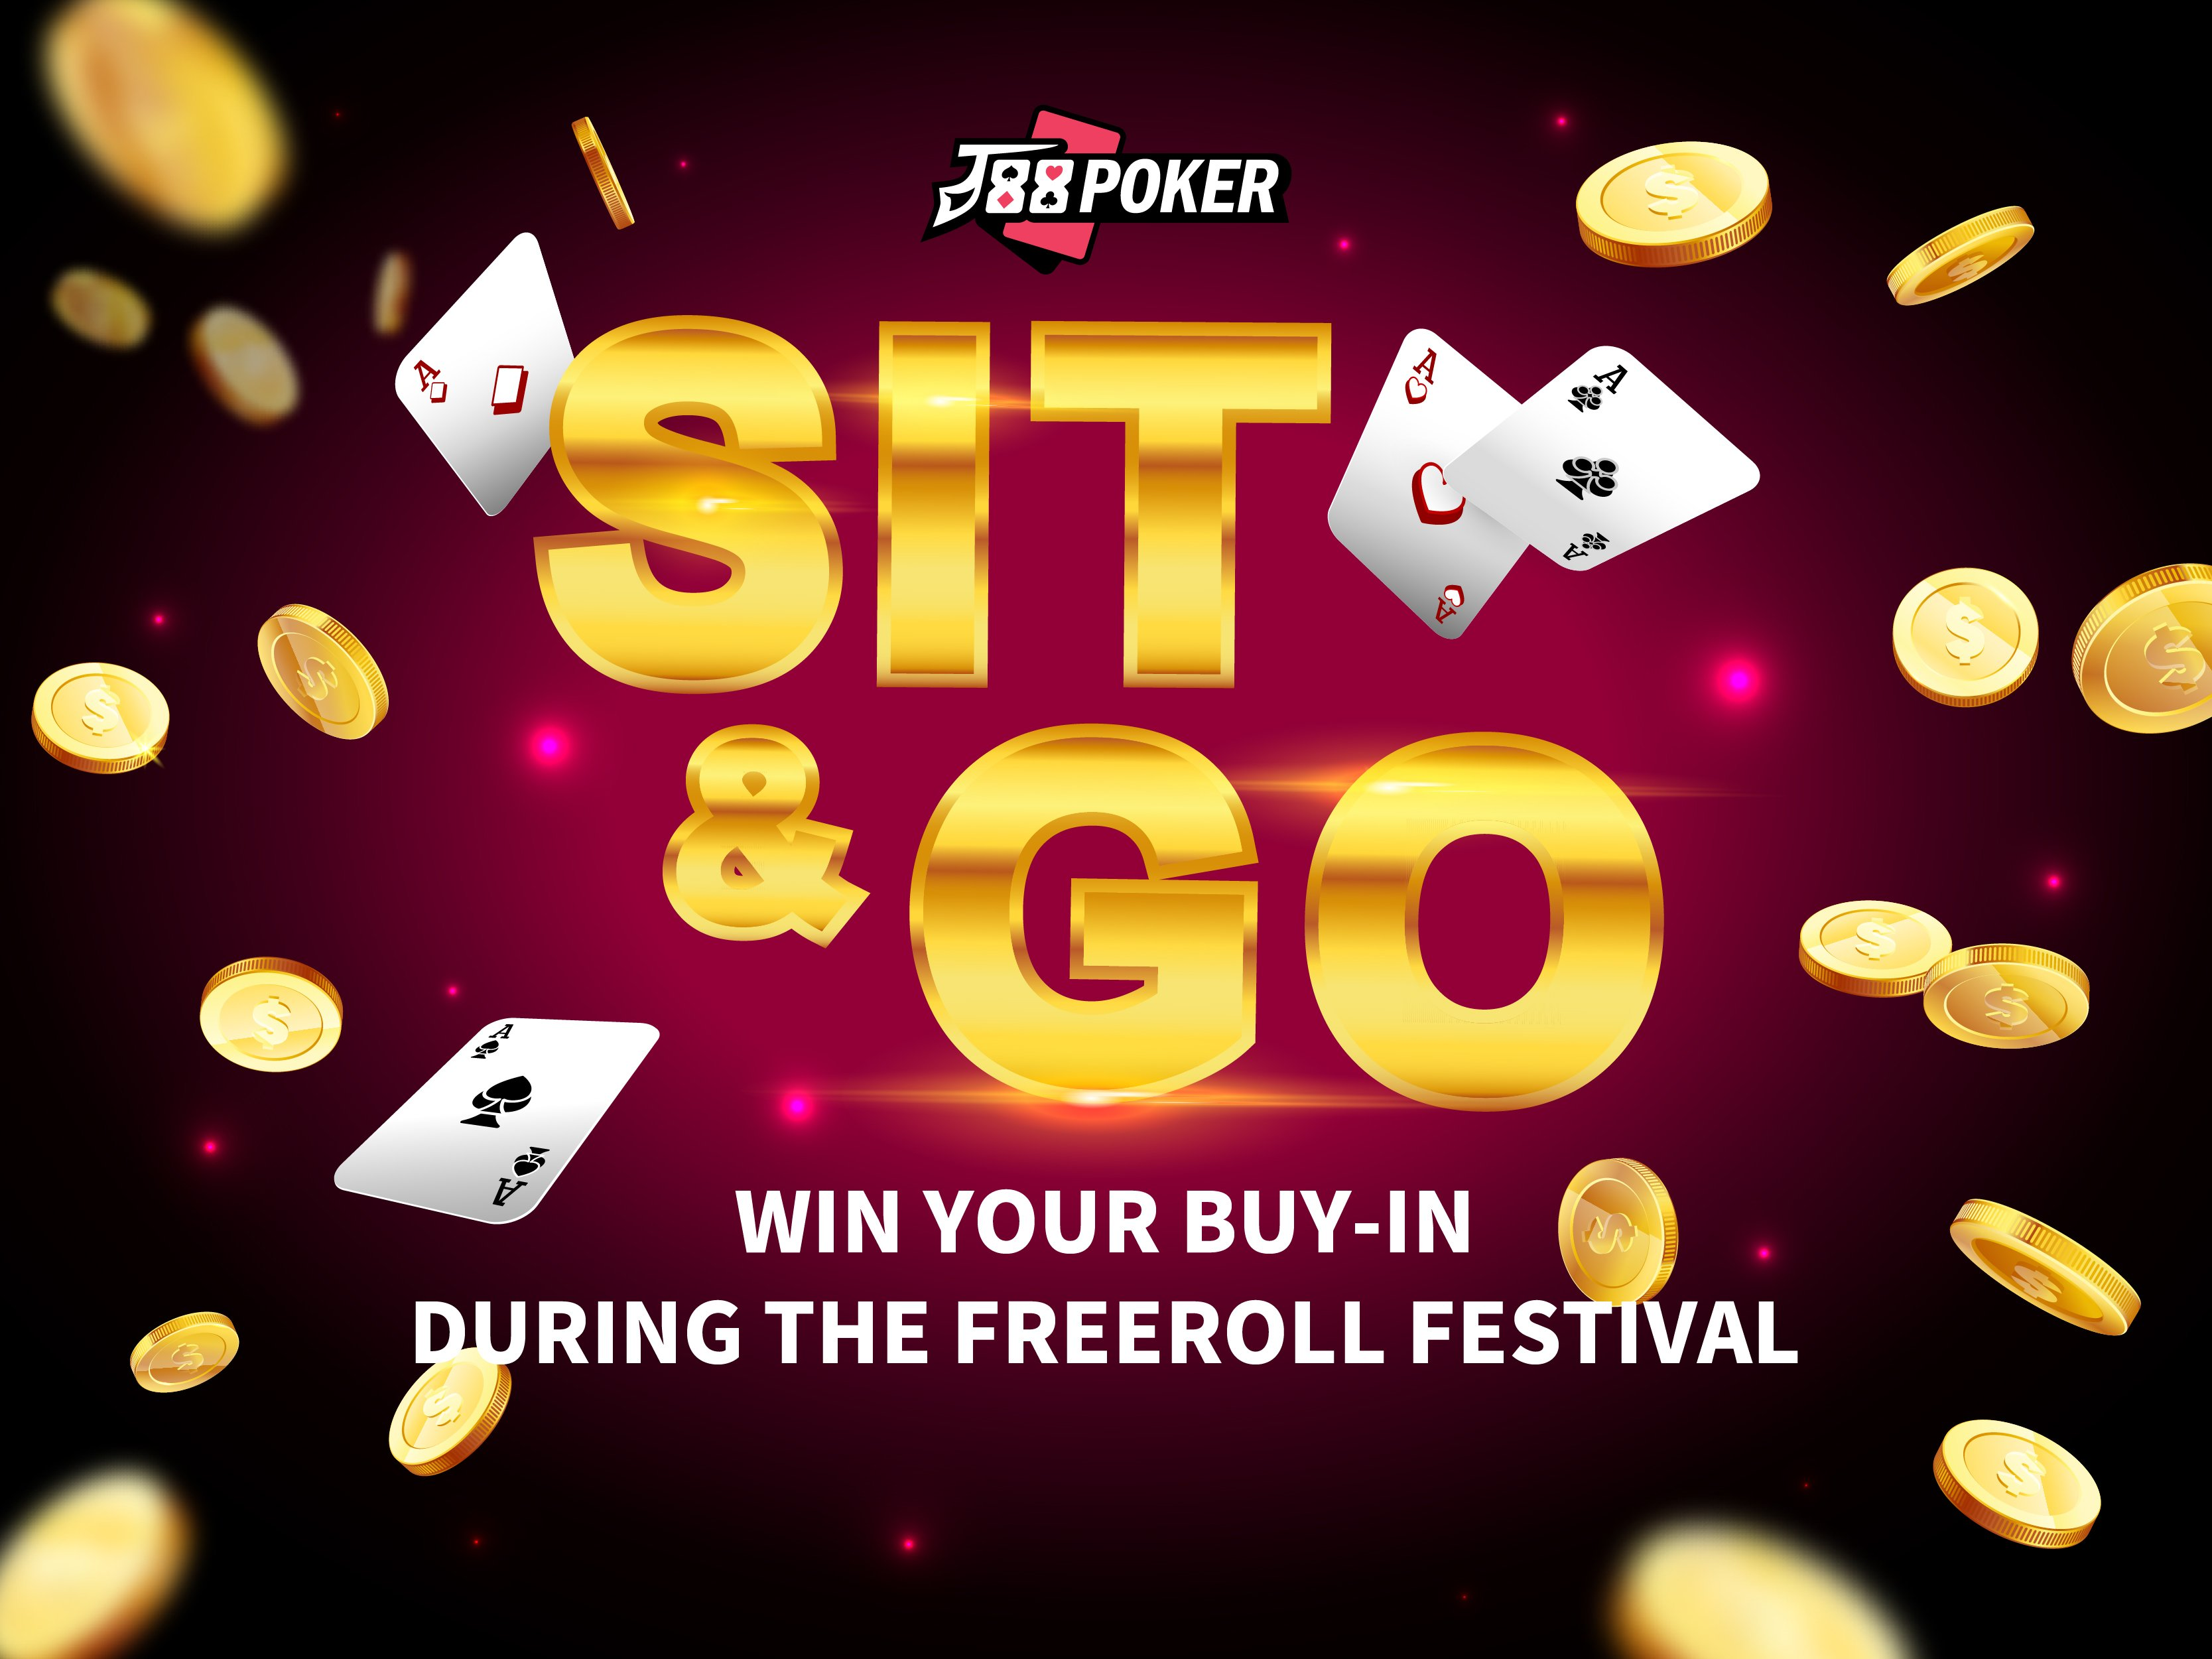 Fast growing Asian poker site J88Poker launches Sit&Go